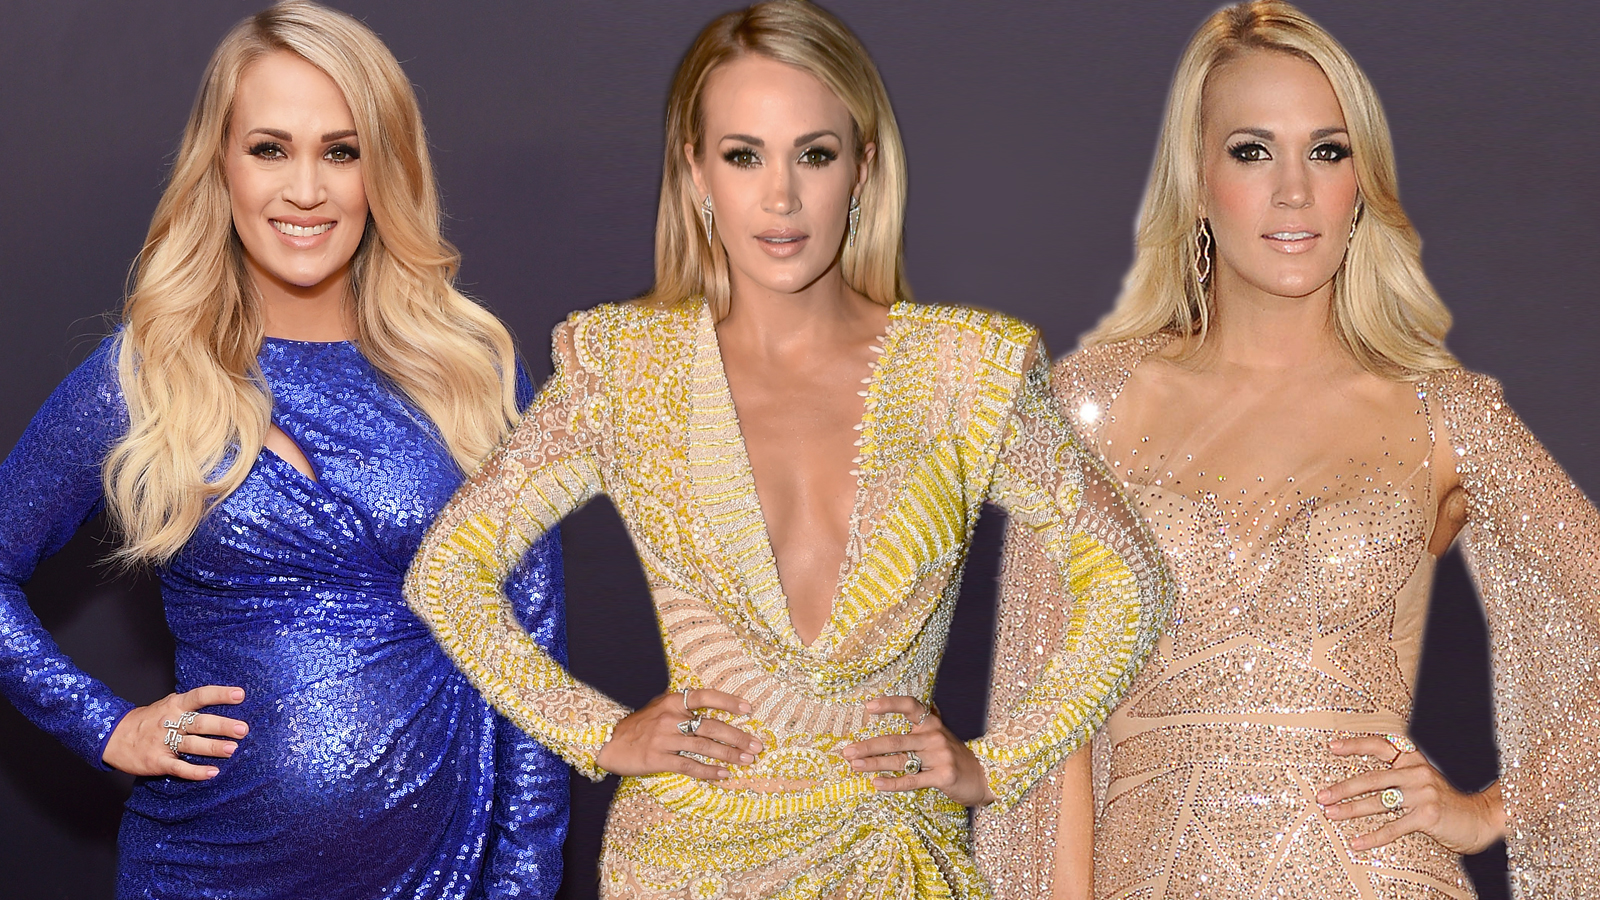 Shimmer and Glimmer! Here Are Carrie Underwood's Best Style Moments in Honor of Her 36th Birthday